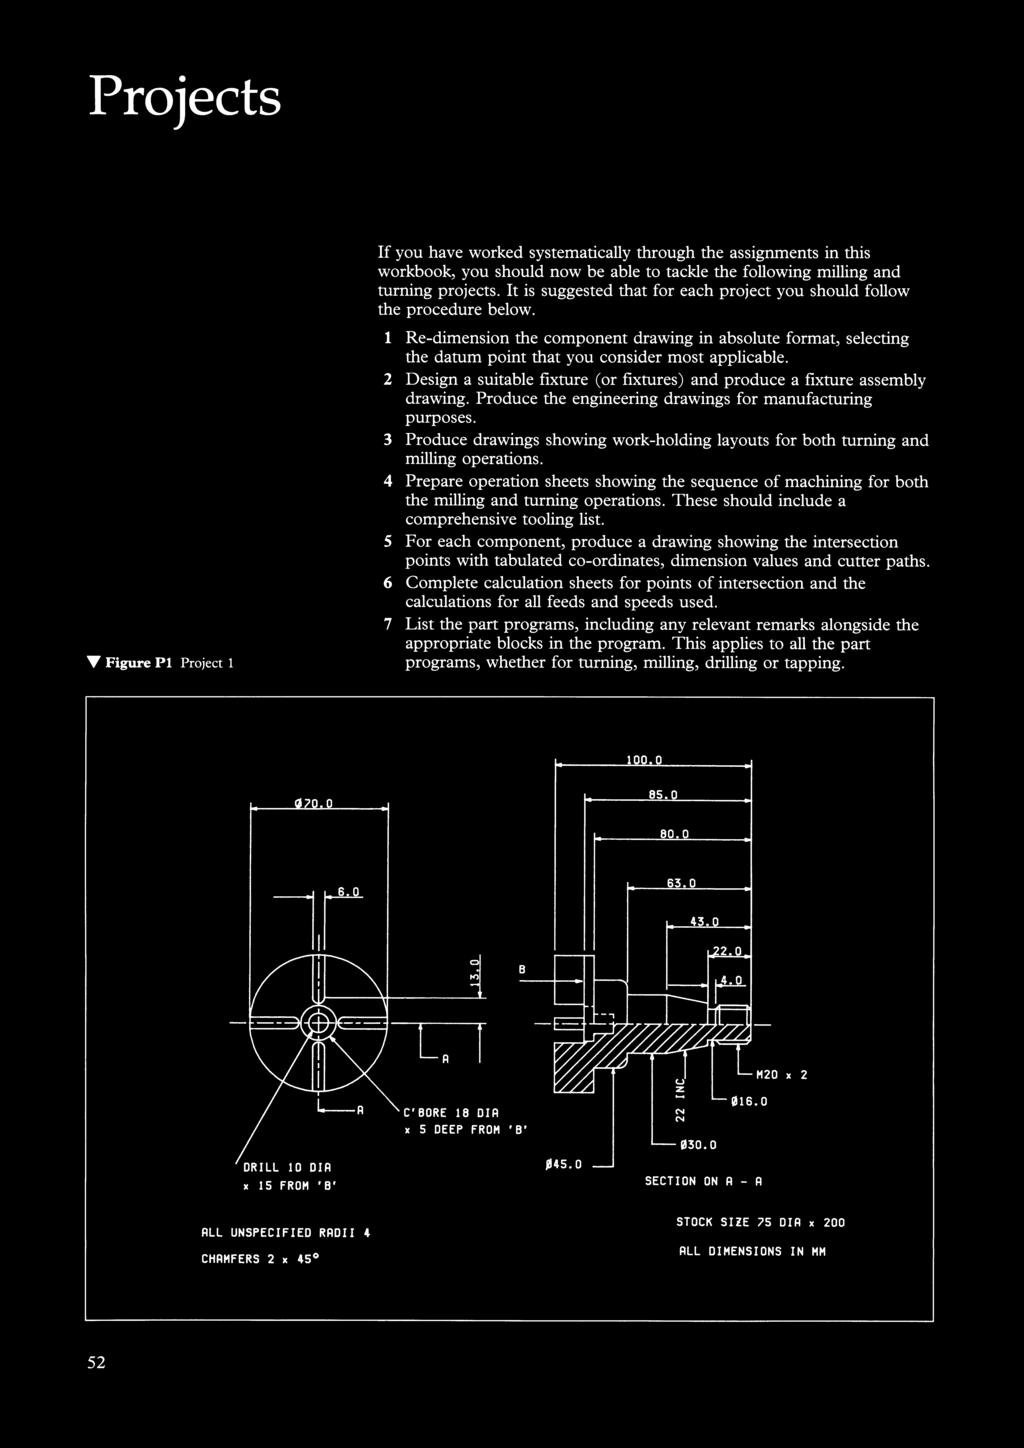 Projects ~ Figure Pl Project 1 If you have worked systematically through the assignments in this workbook, you should now be able to tackle the following milling and turning projects.